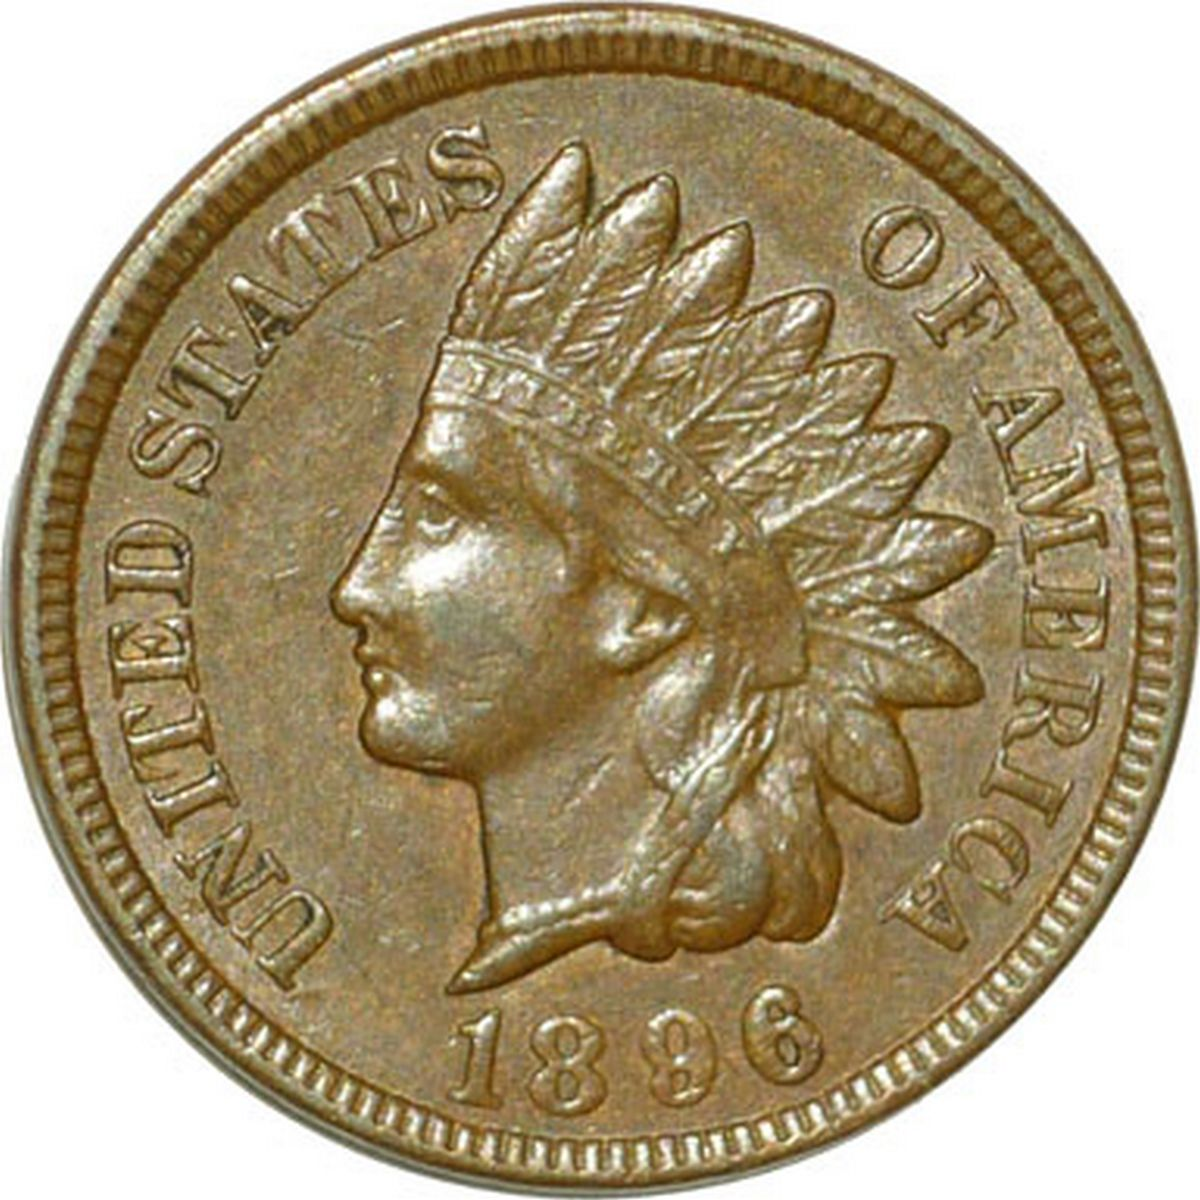 1896 RPD-025 - Indian Head Penny - Photo by David Poliquin